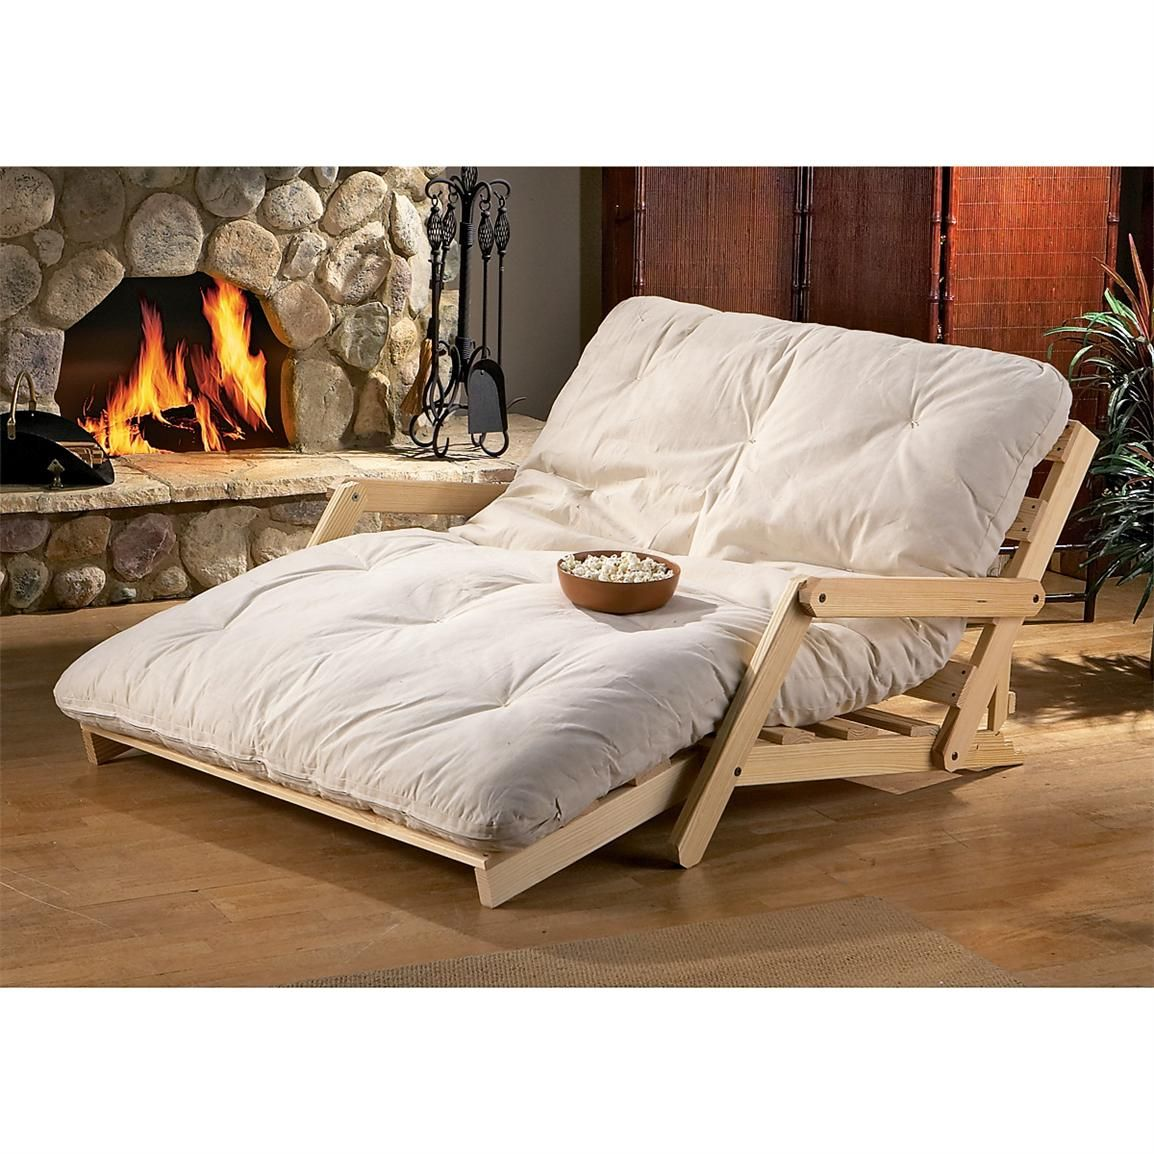 trifecta lounger natural 244306 futons at sportsman s guide